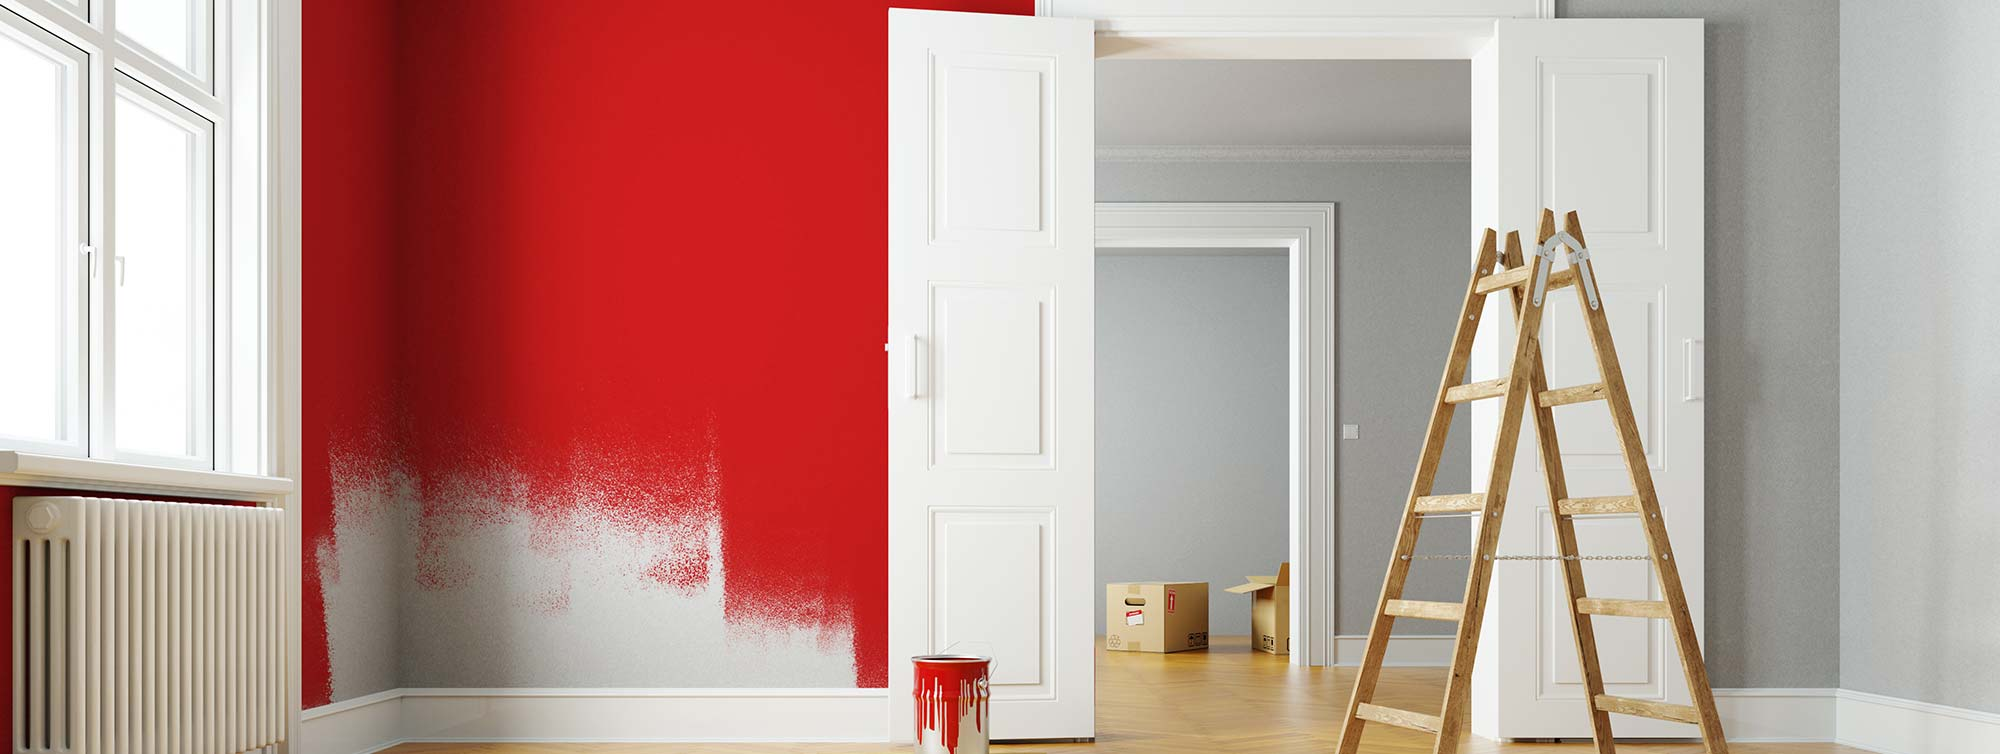 Red Paint on Walls